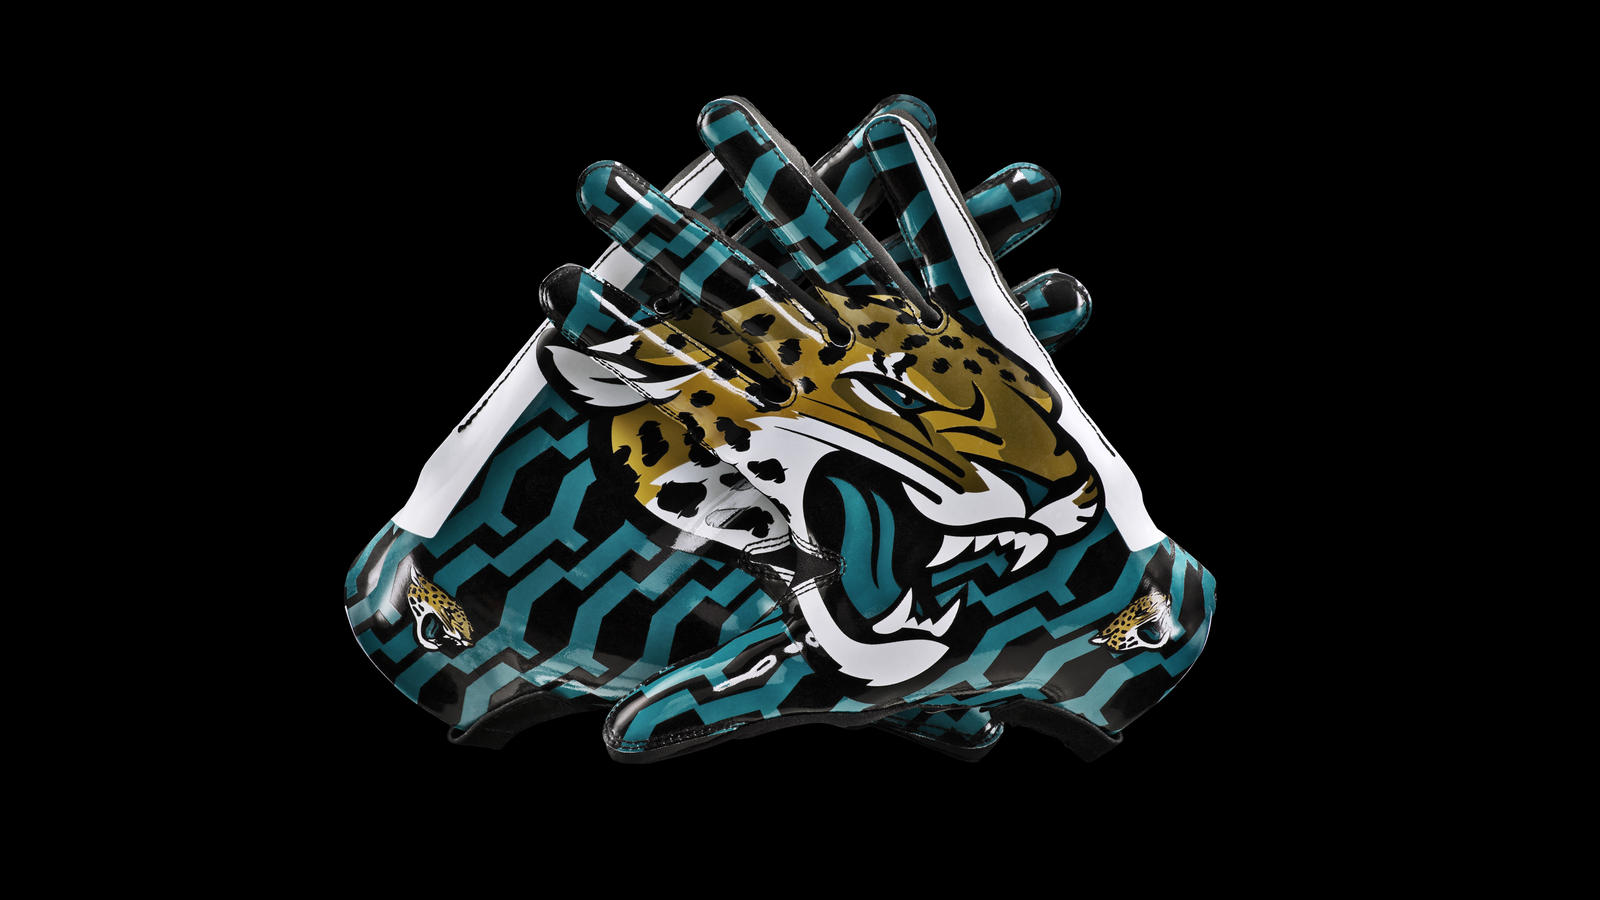 nike news jacksonville jaguars and nike unveil new uniform design. Cars Review. Best American Auto & Cars Review